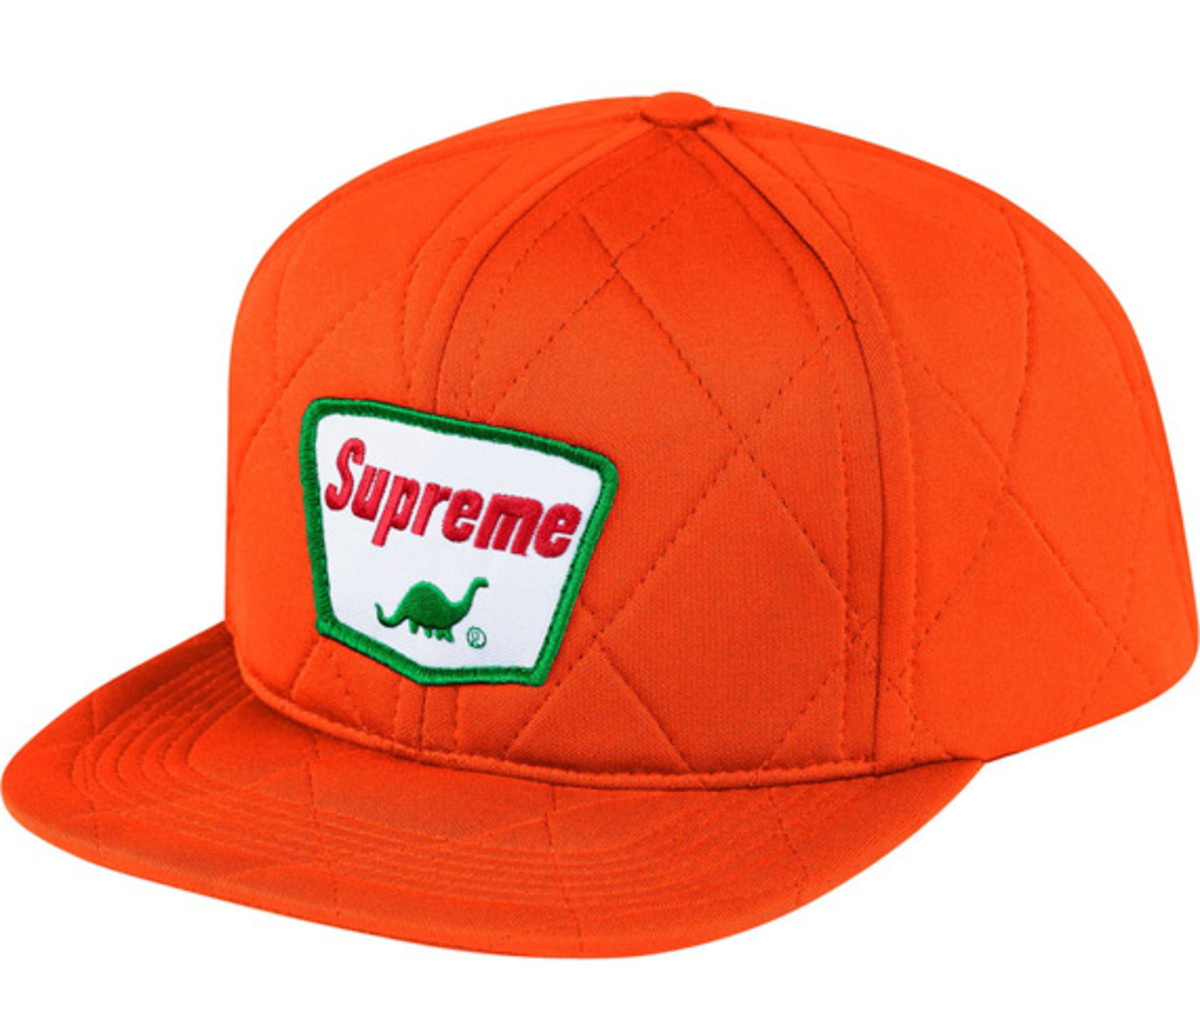 supreme-quilted-foam-6-panel-snapback-caps-07